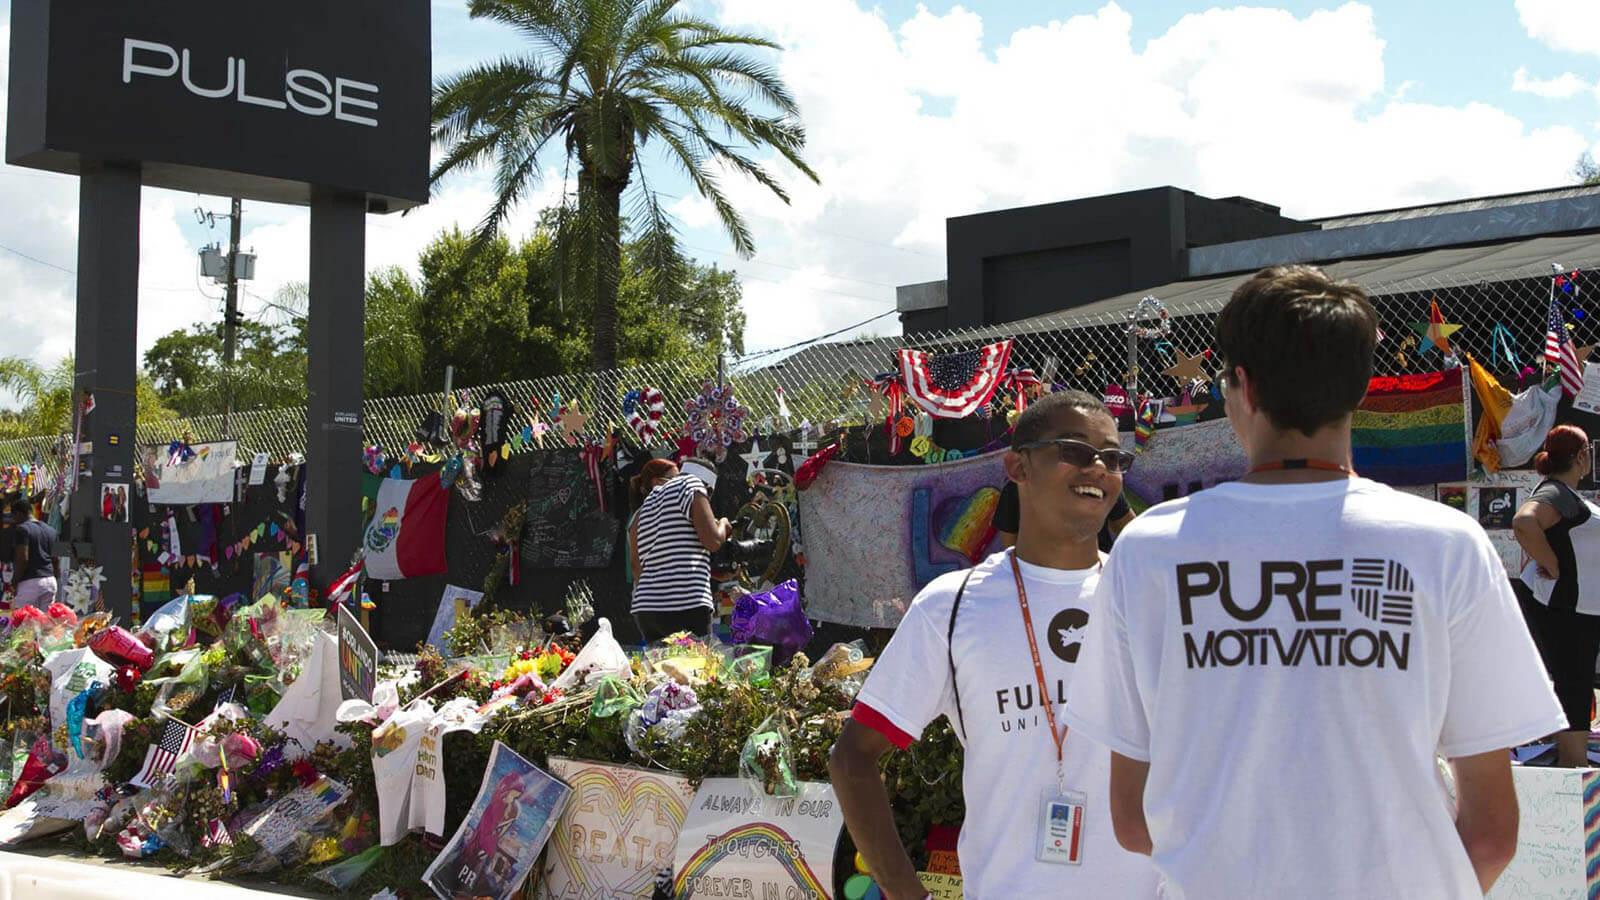 Pure Motivation Volunteers with Critical Mass in Support of PULSE Victims - Hero image